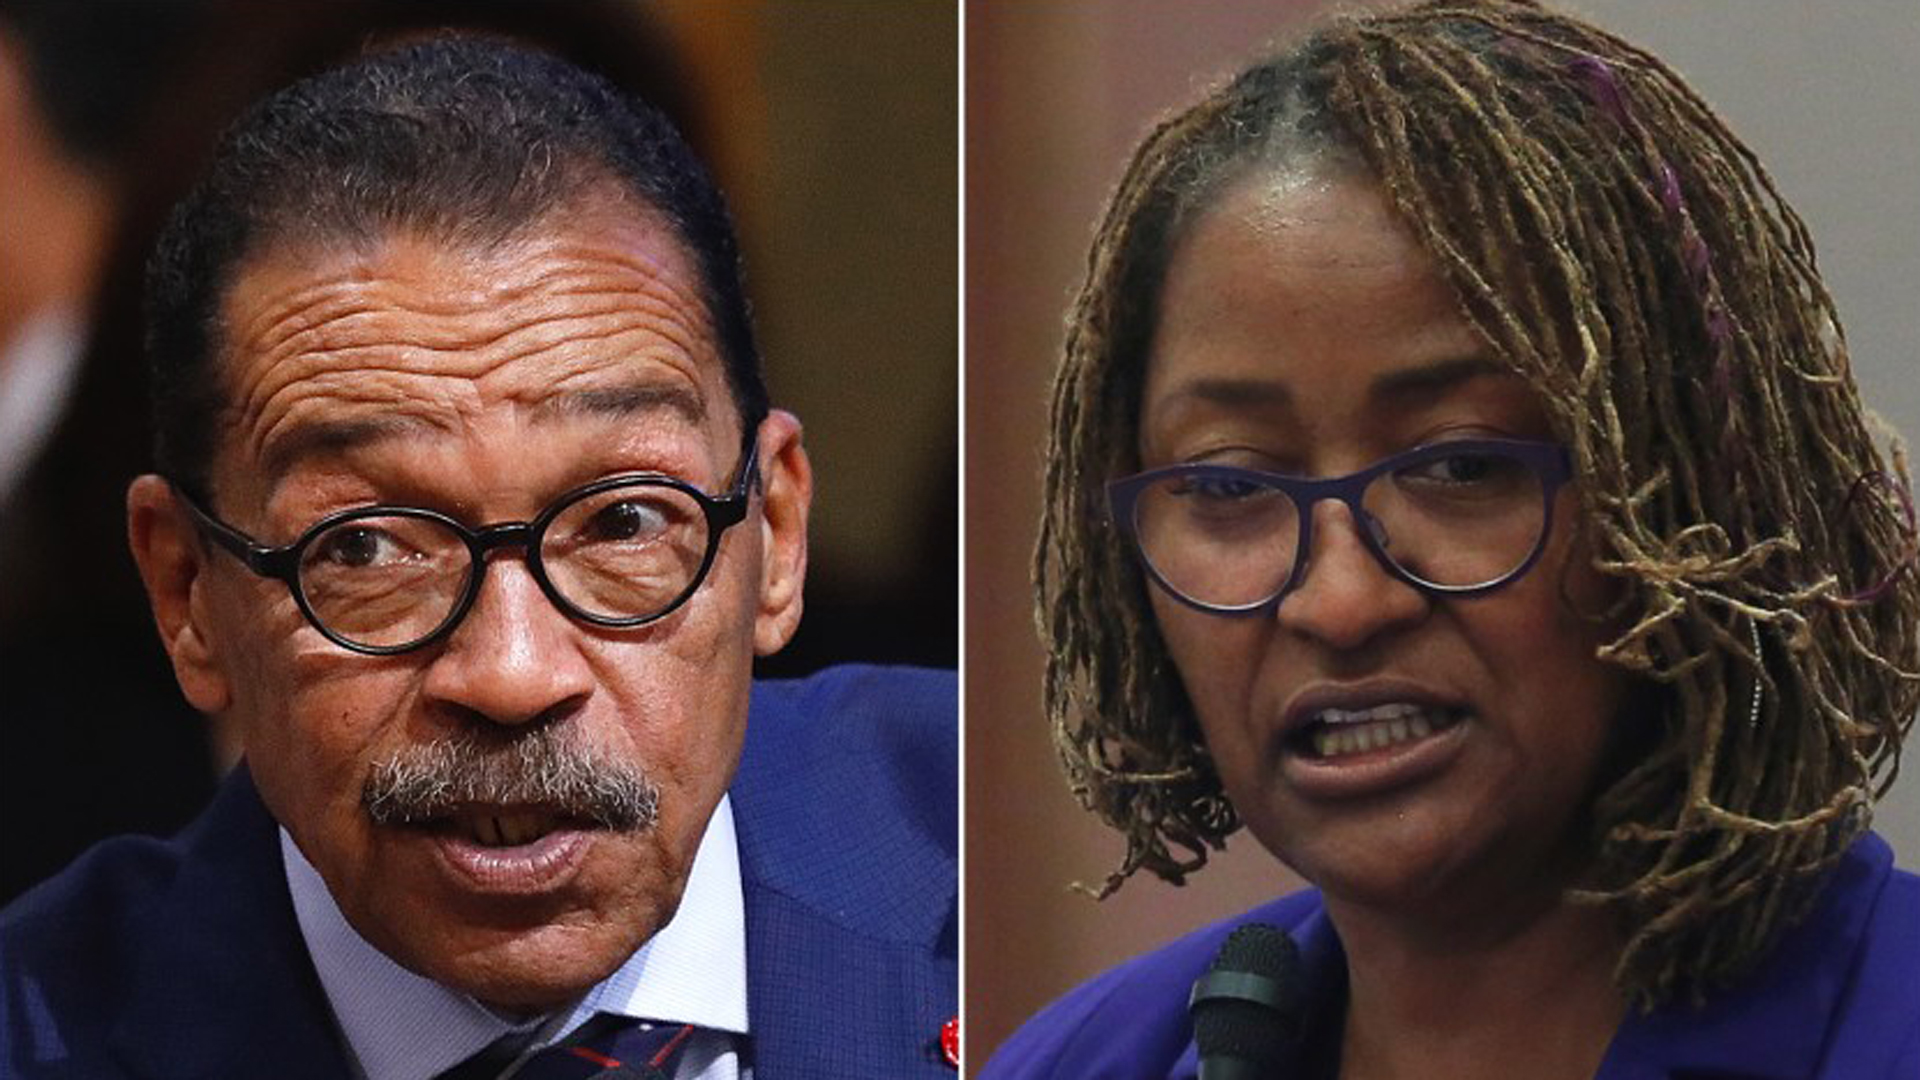 From left: Herb Wesson and Holly Mitchell are seen in undated photos. (Credit: Los Angeles Times)